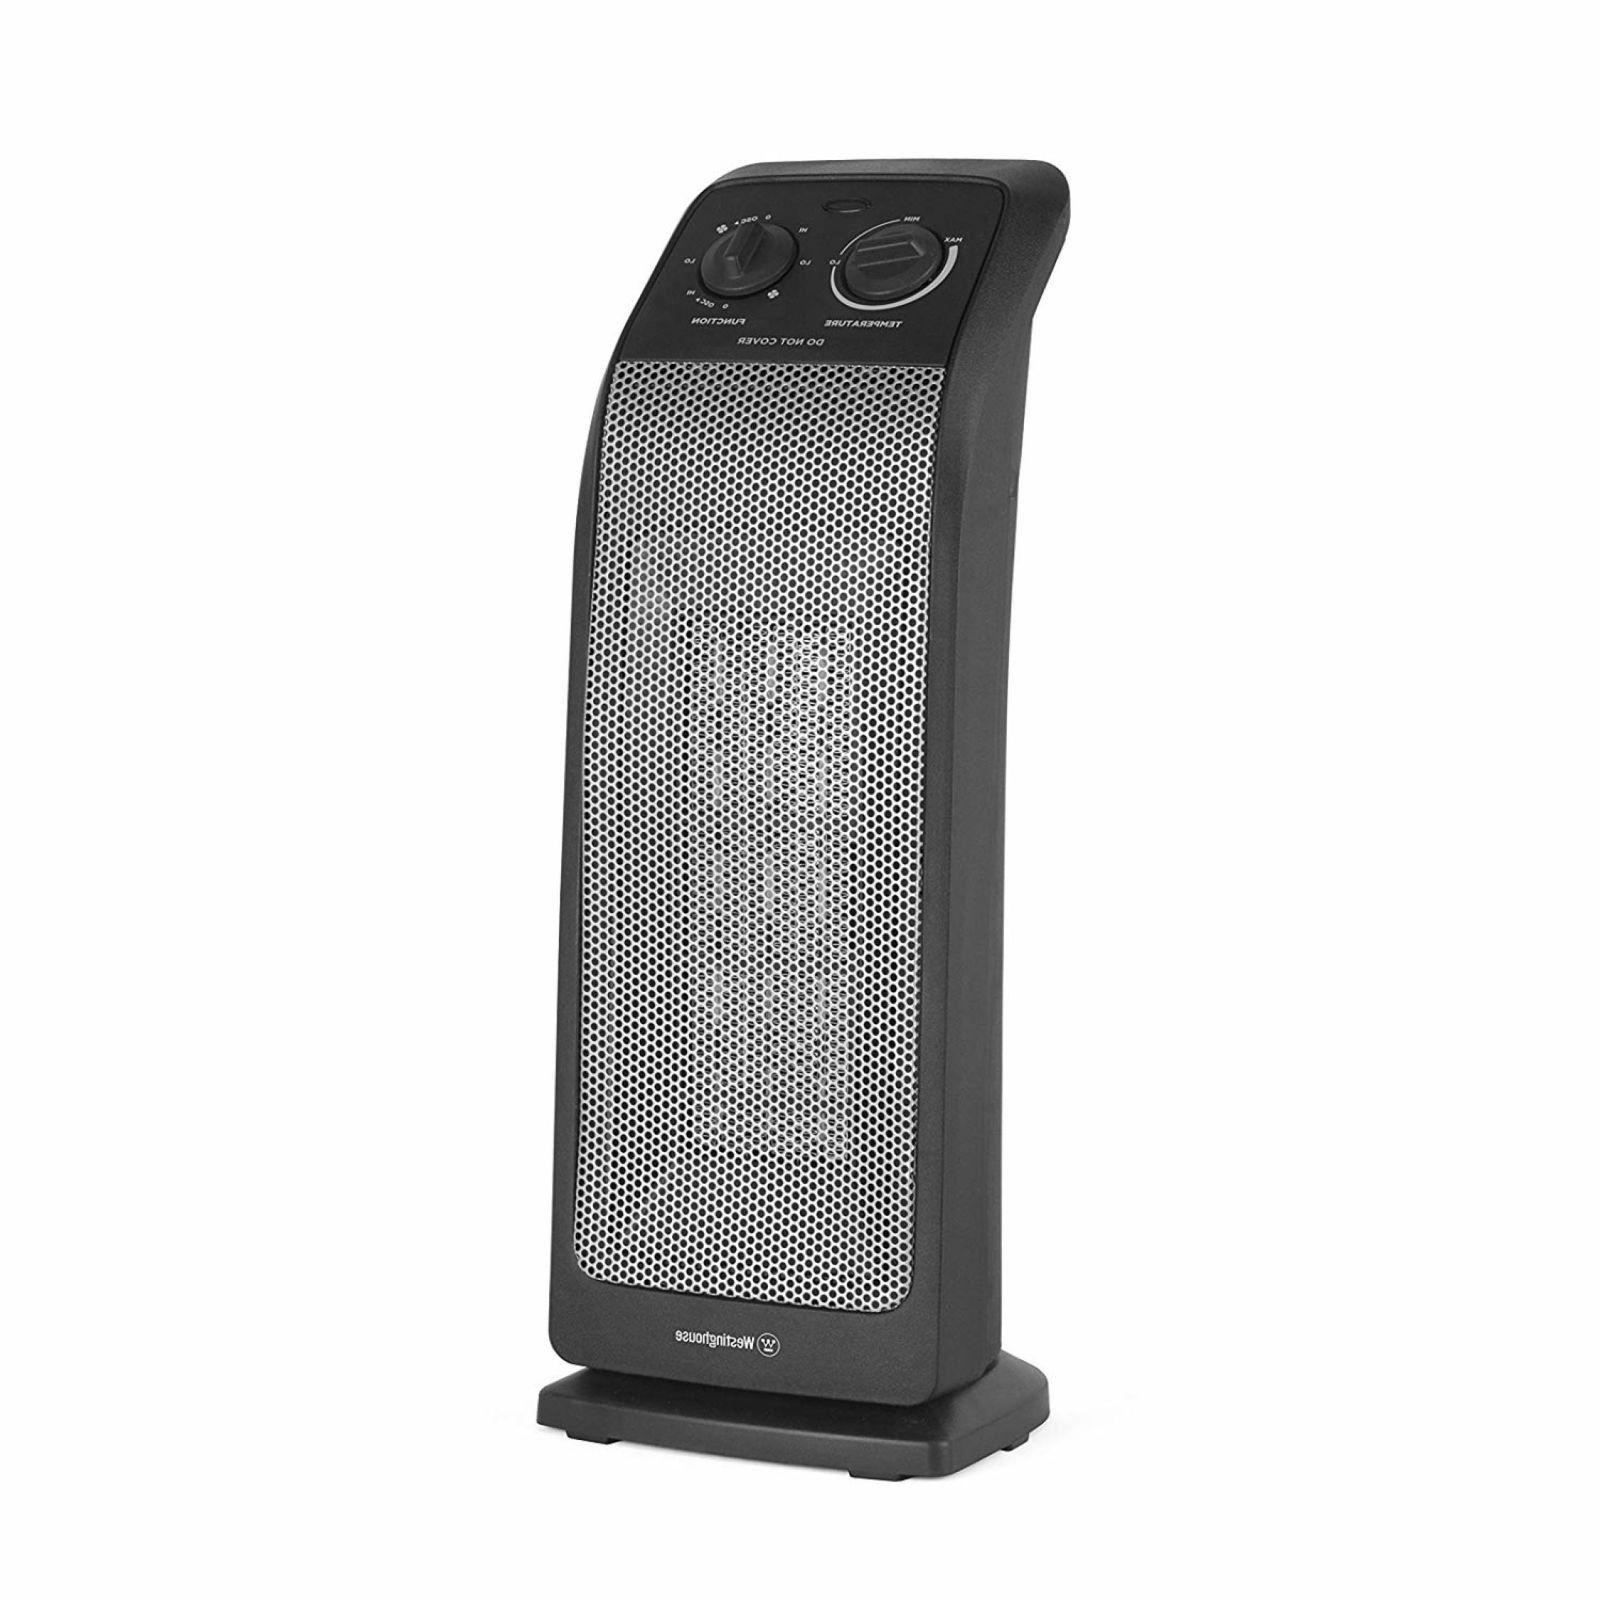 1500W Electric Portable Tower Heater Oscillating Ceramic Spa